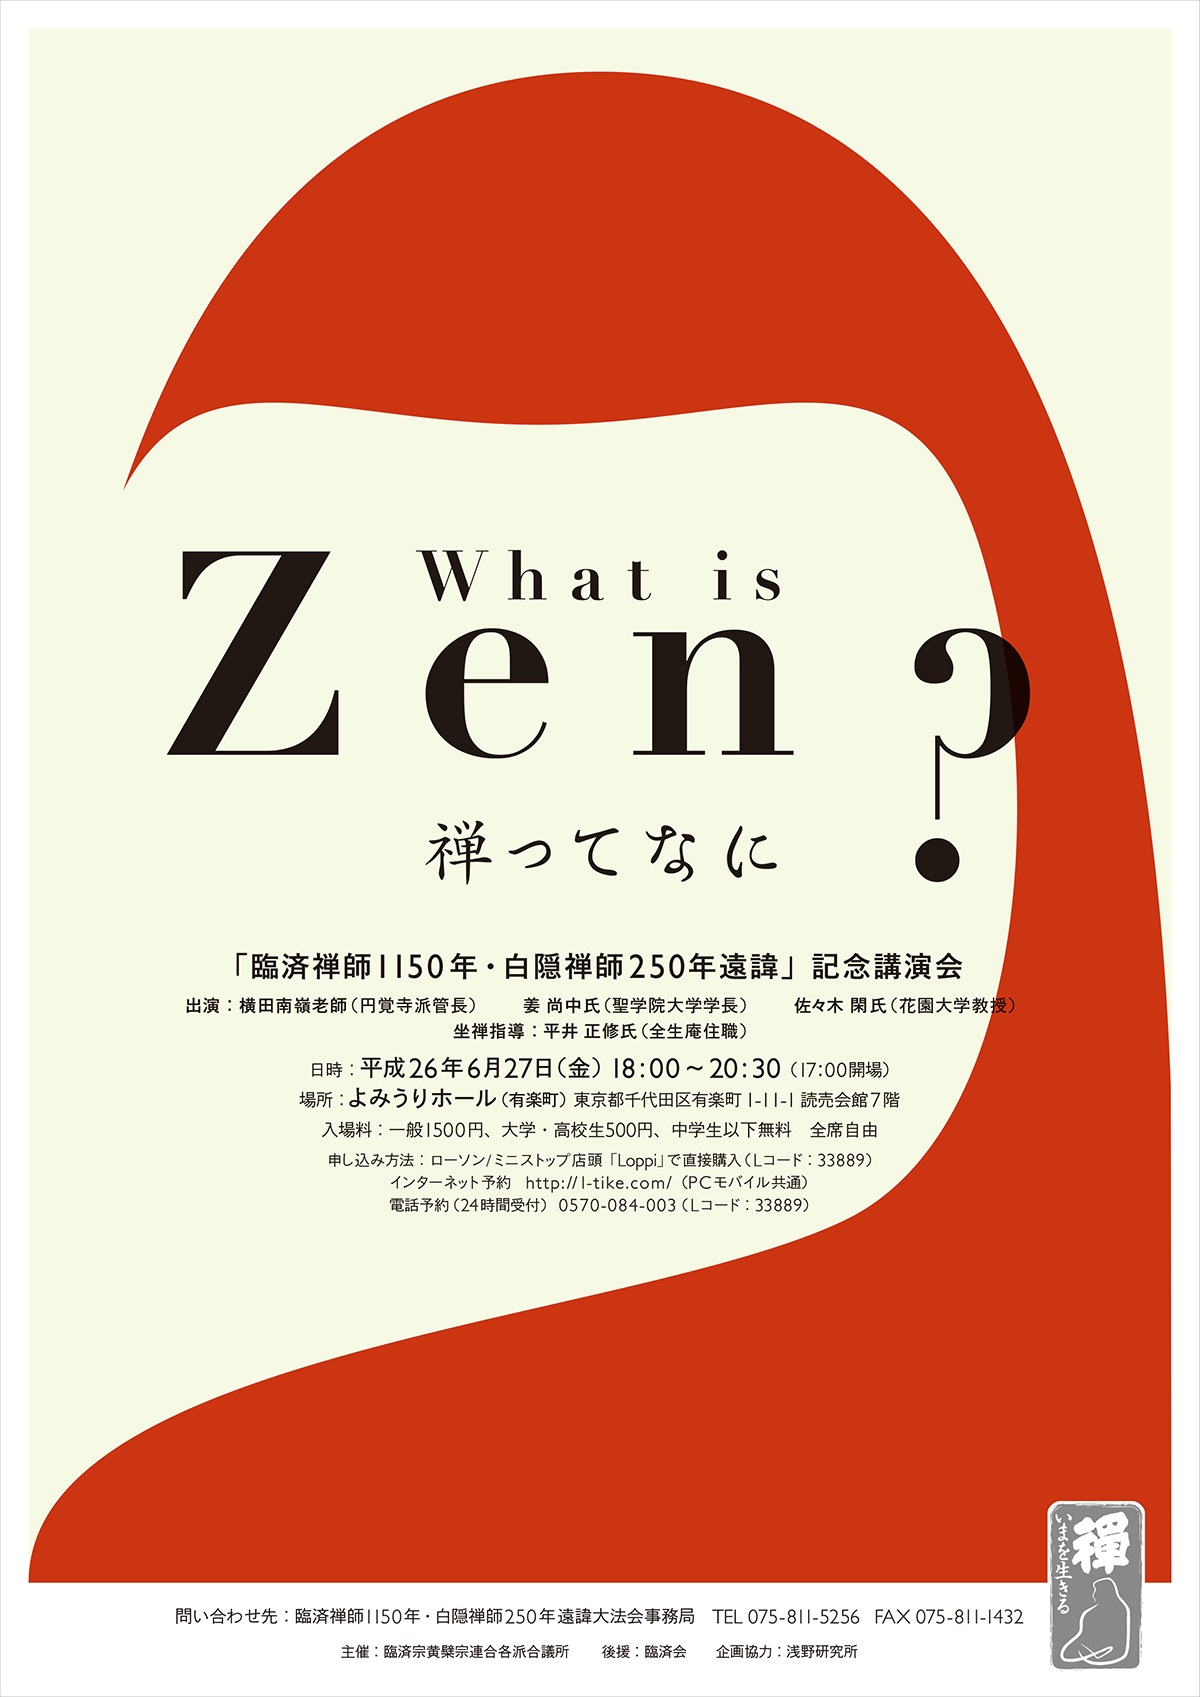 http://rinnou.net/rinzai1150/images/20140627lecture1.jpg